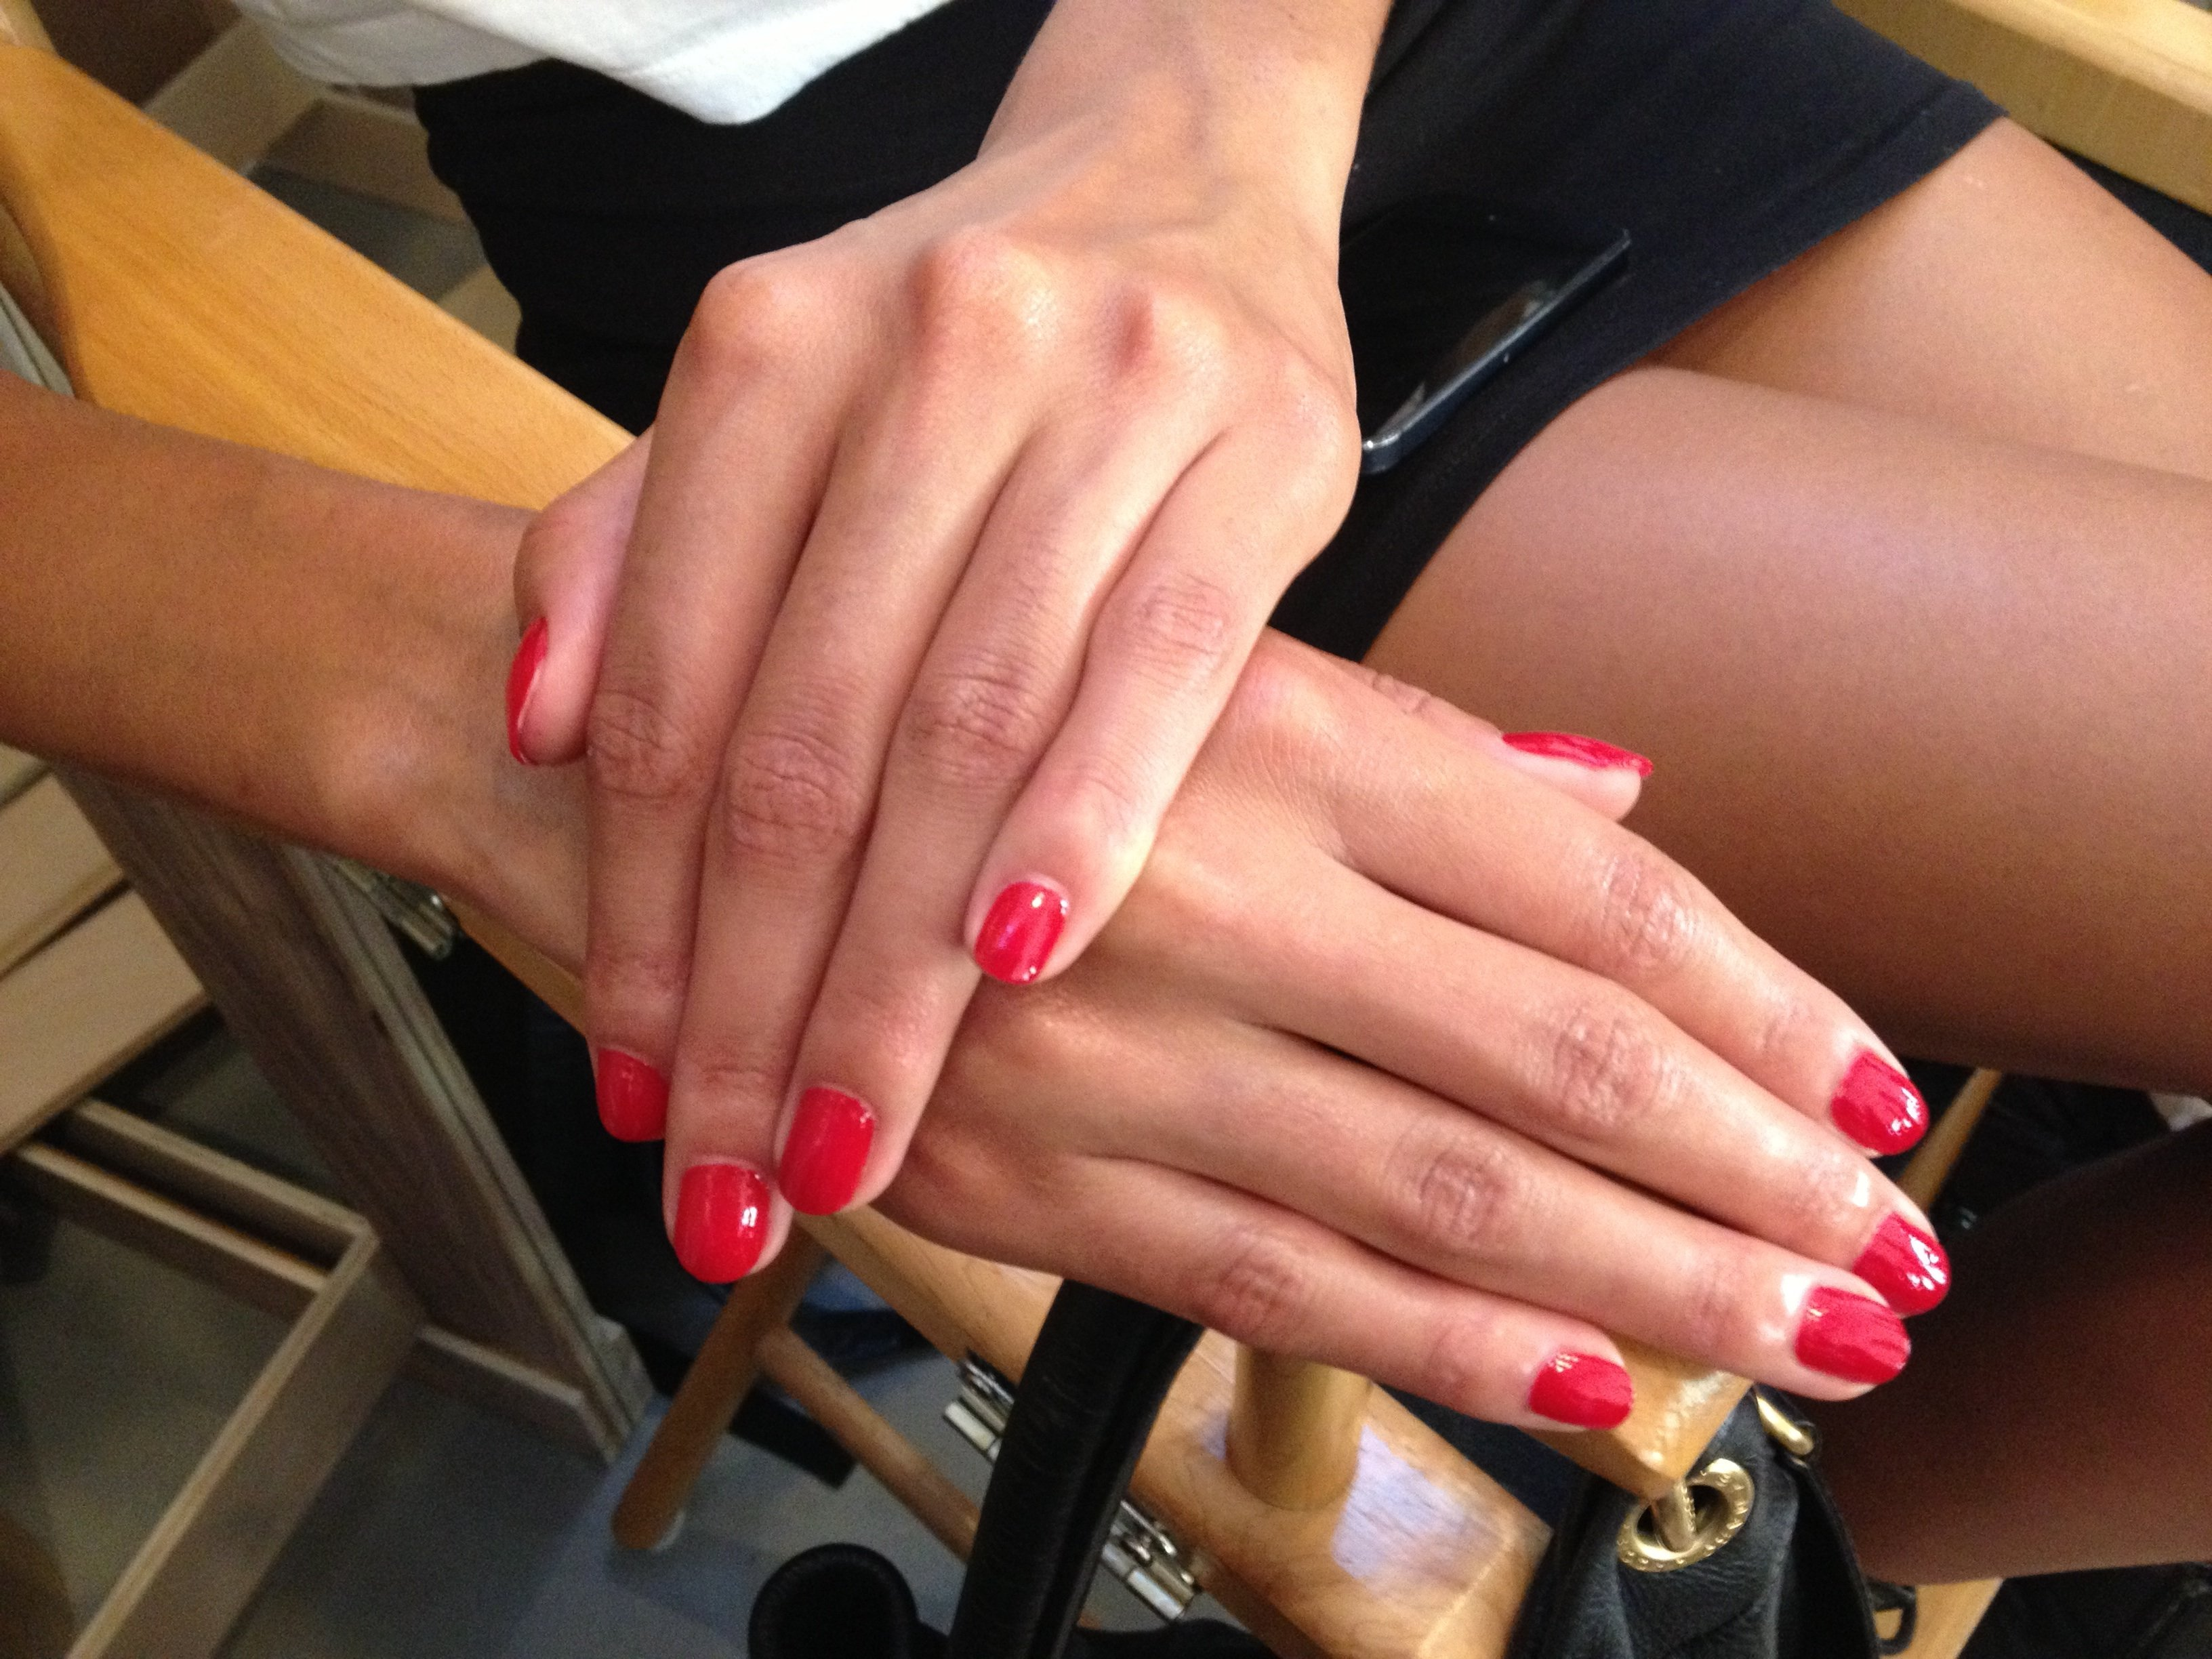 Red nails complete the look.